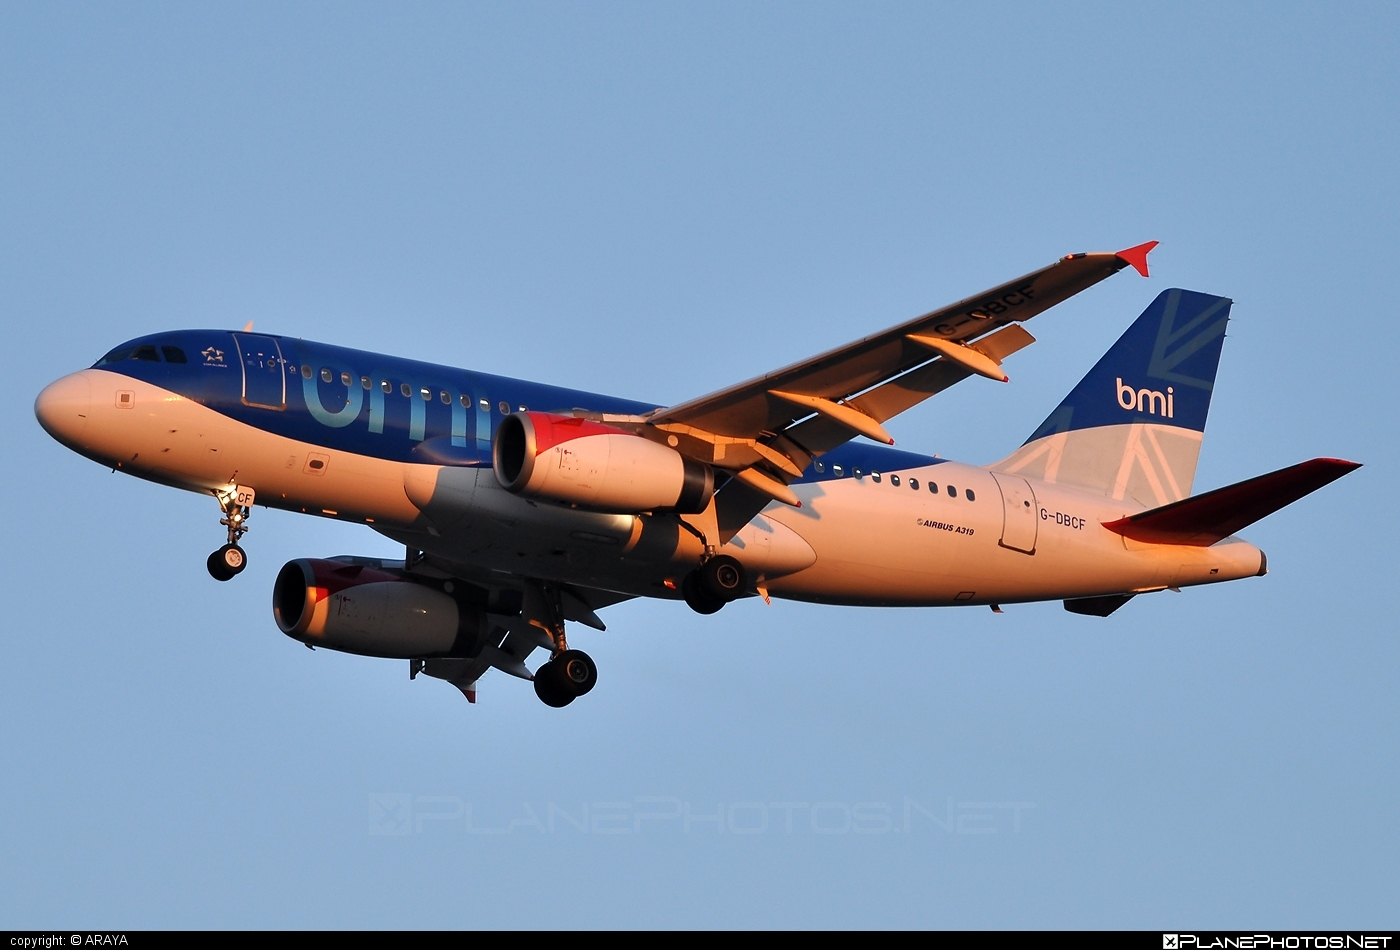 Airbus A319-131 - G-DBCF operated by bmi British Midland #a319 #a320family #airbus #airbus319